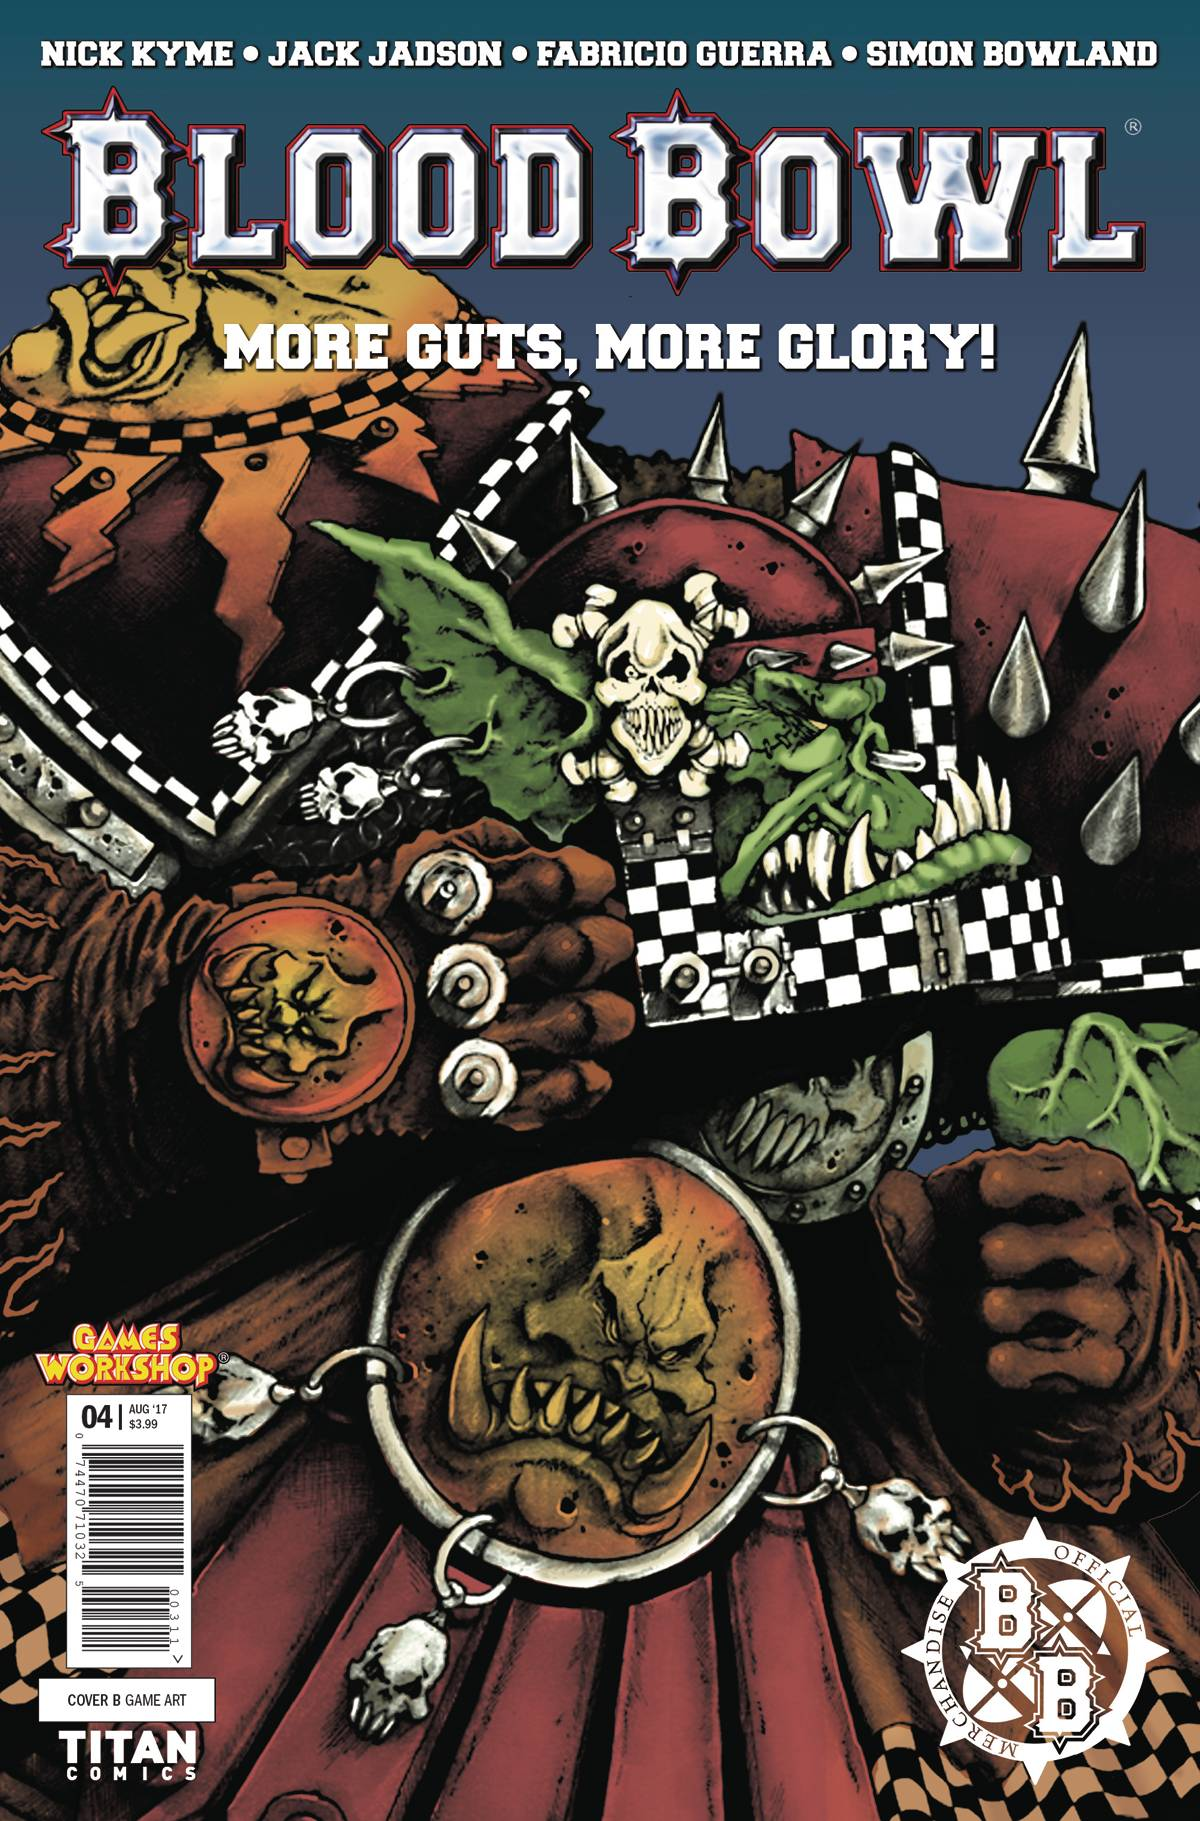 BLOOD BOWL MORE GUTS MORE GLORY #4 (OF 4) CVR B CLASSIC GAME